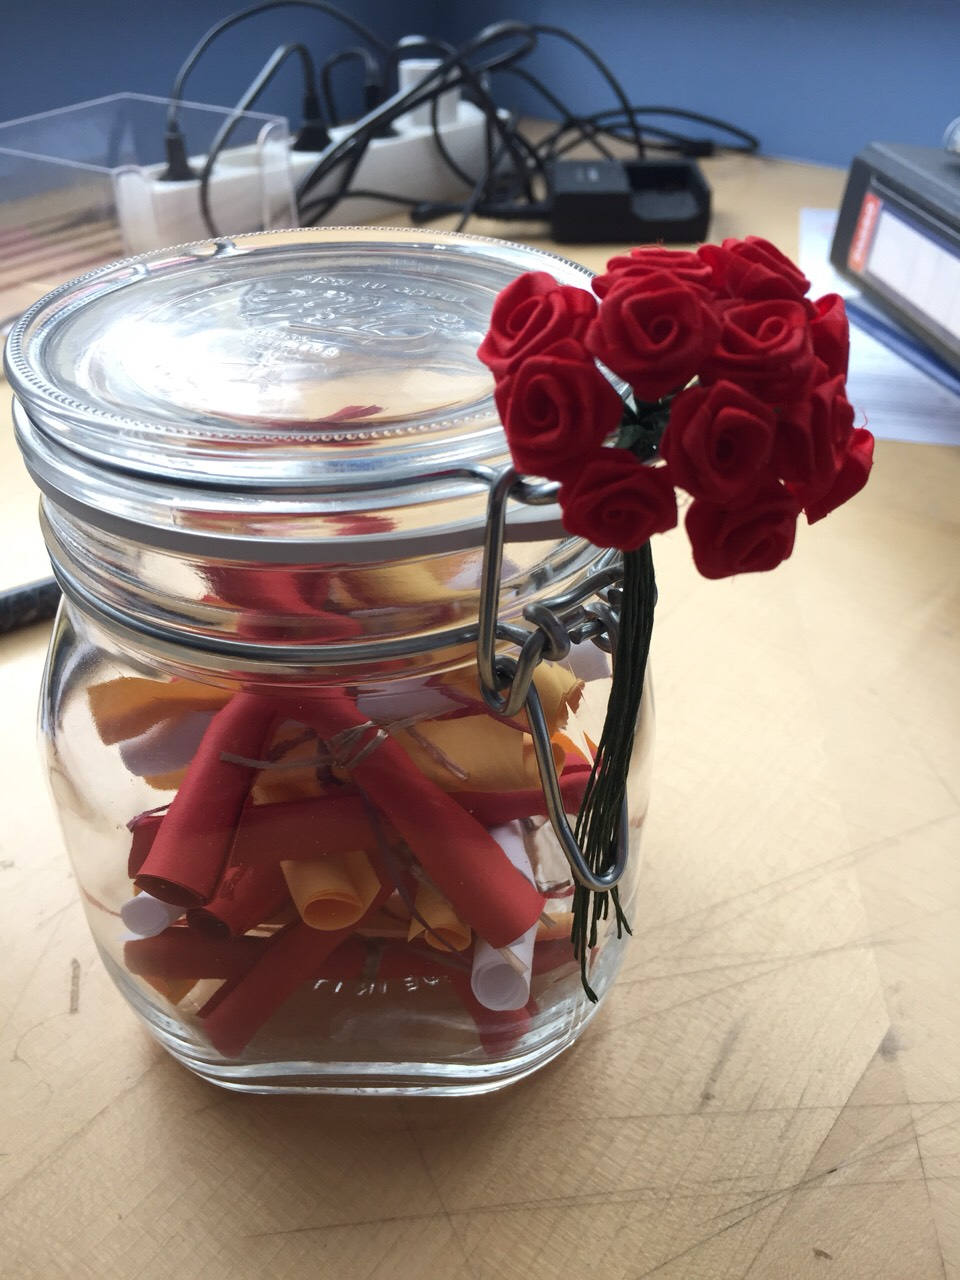 Add the roses to your bottling jar and you are ready to go ☺️   Like, Save or Follow if you like this tip. ☺️